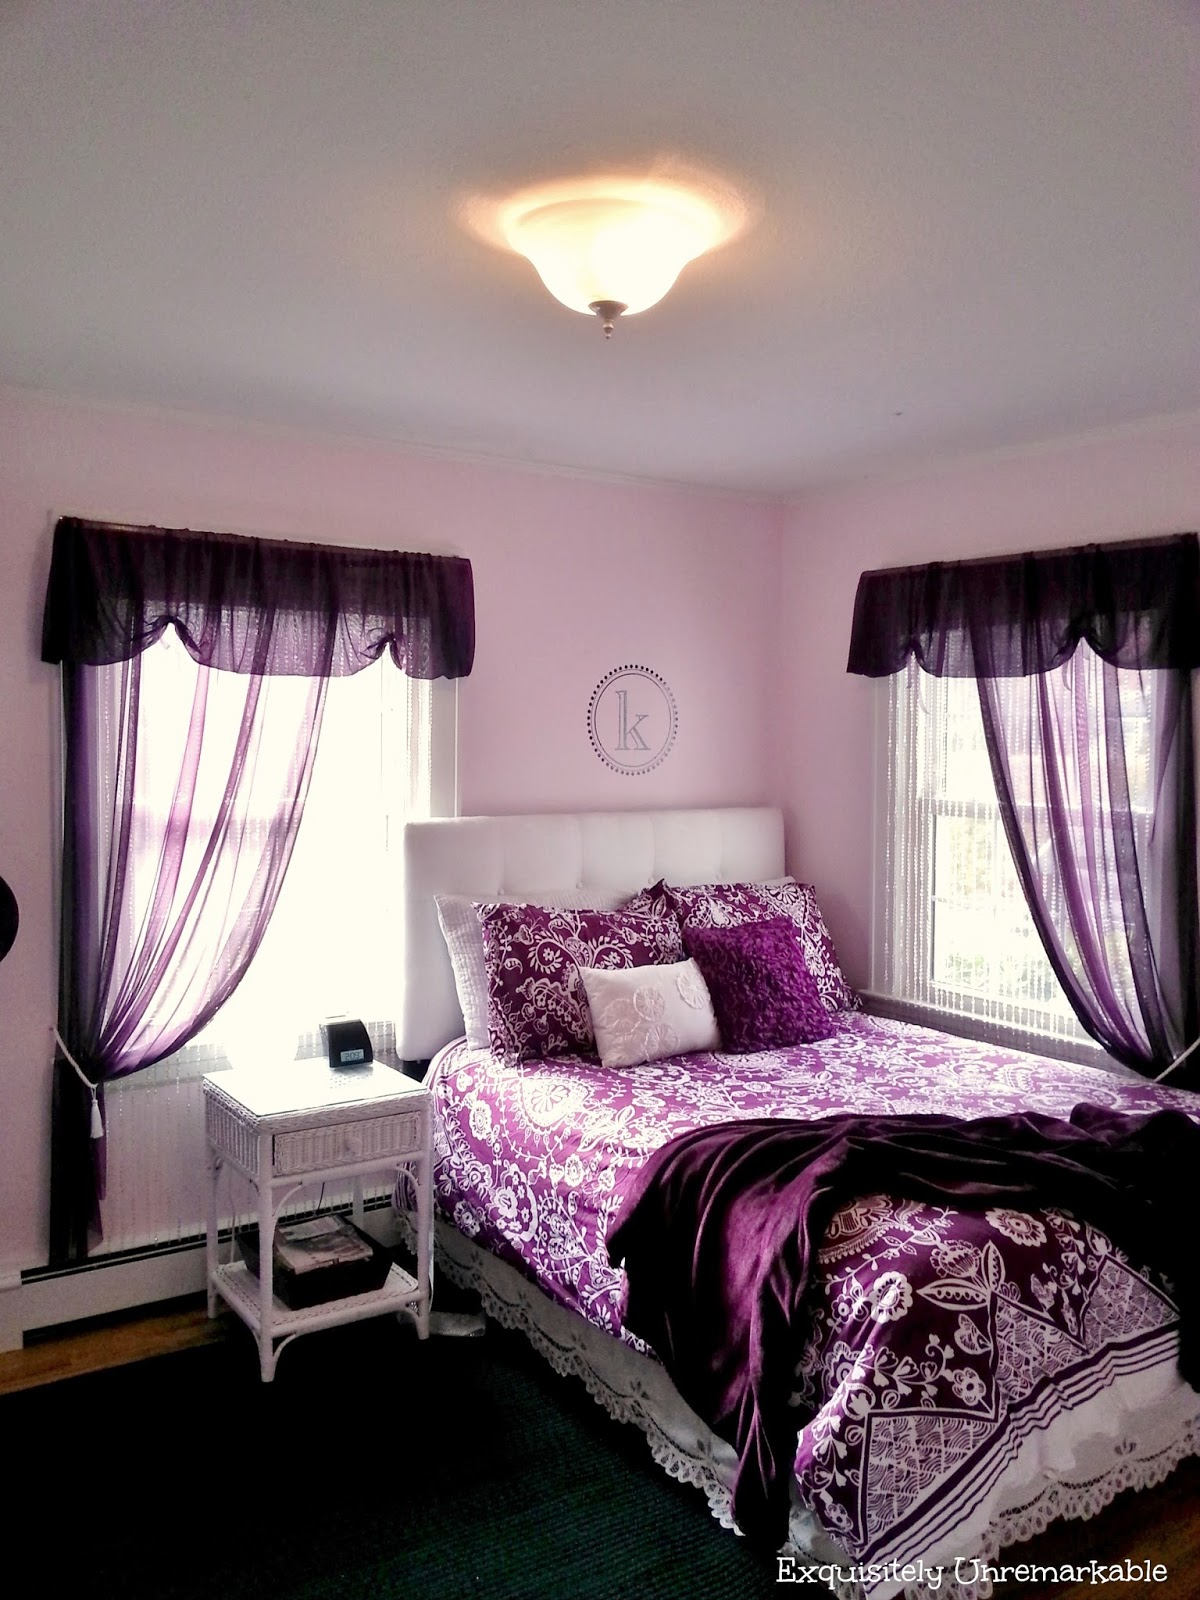 Black Bedroom Furniture Decorating Ideas Pretty In Purple Teen Bedroom Exquisitely Unremarkable